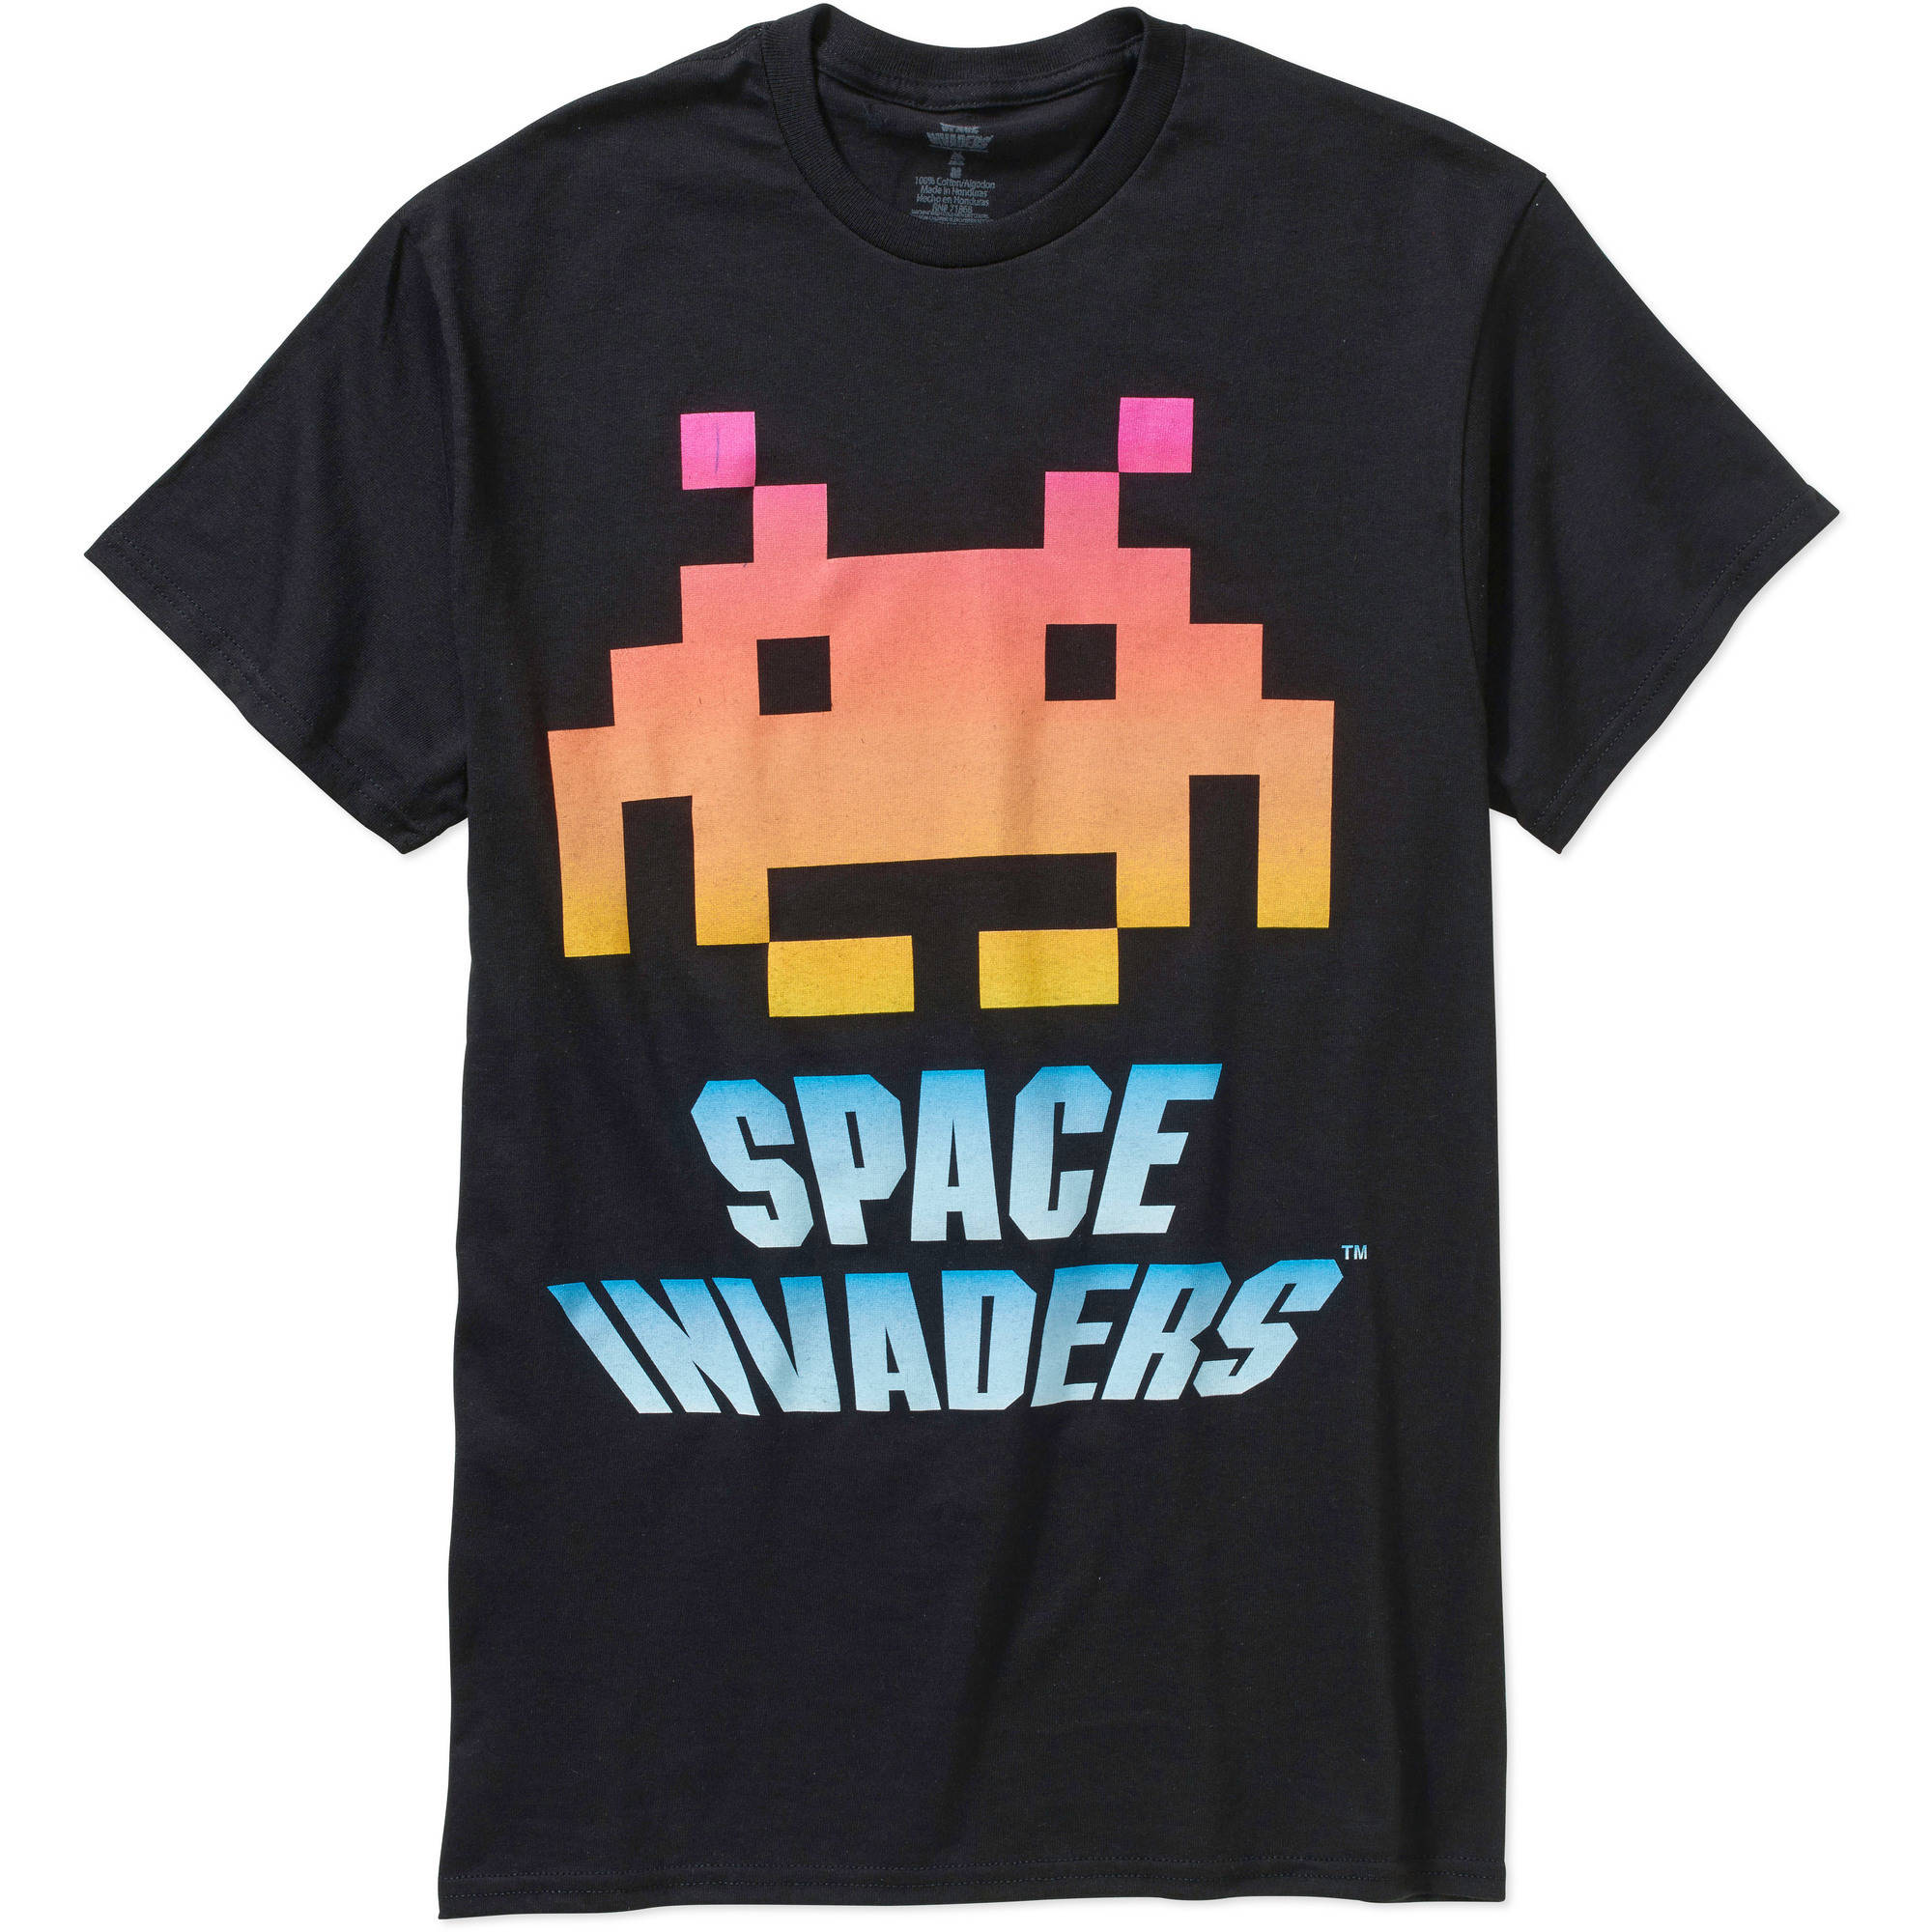 Space Invaders Men's Graphic Short Sleeve Tee